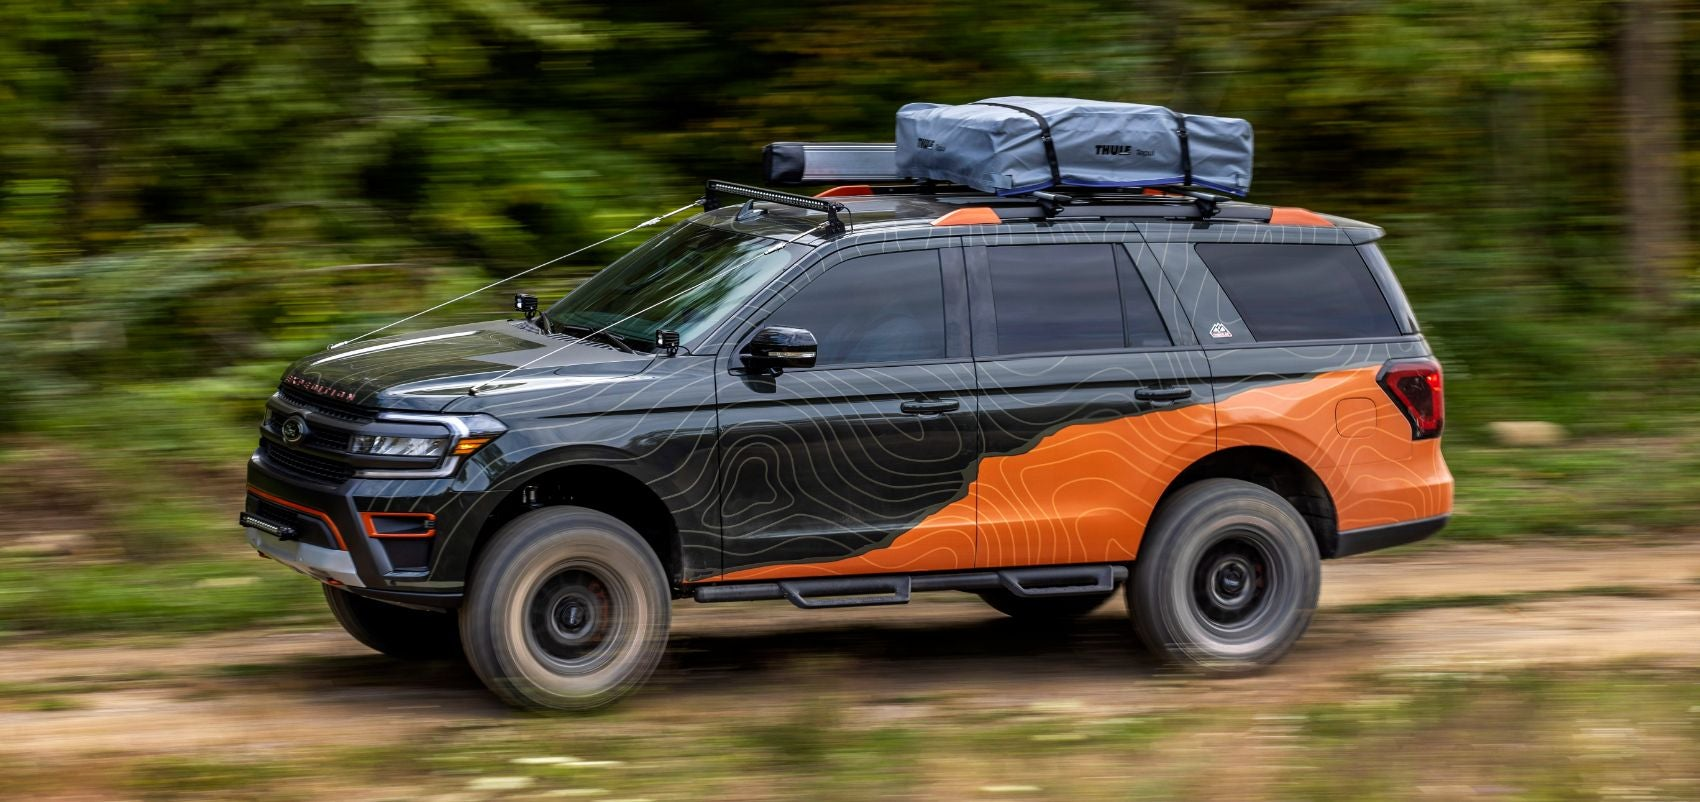 Enjoy This Cool Gallery of The Ford Expedition Timberline Off-Grid Concept!